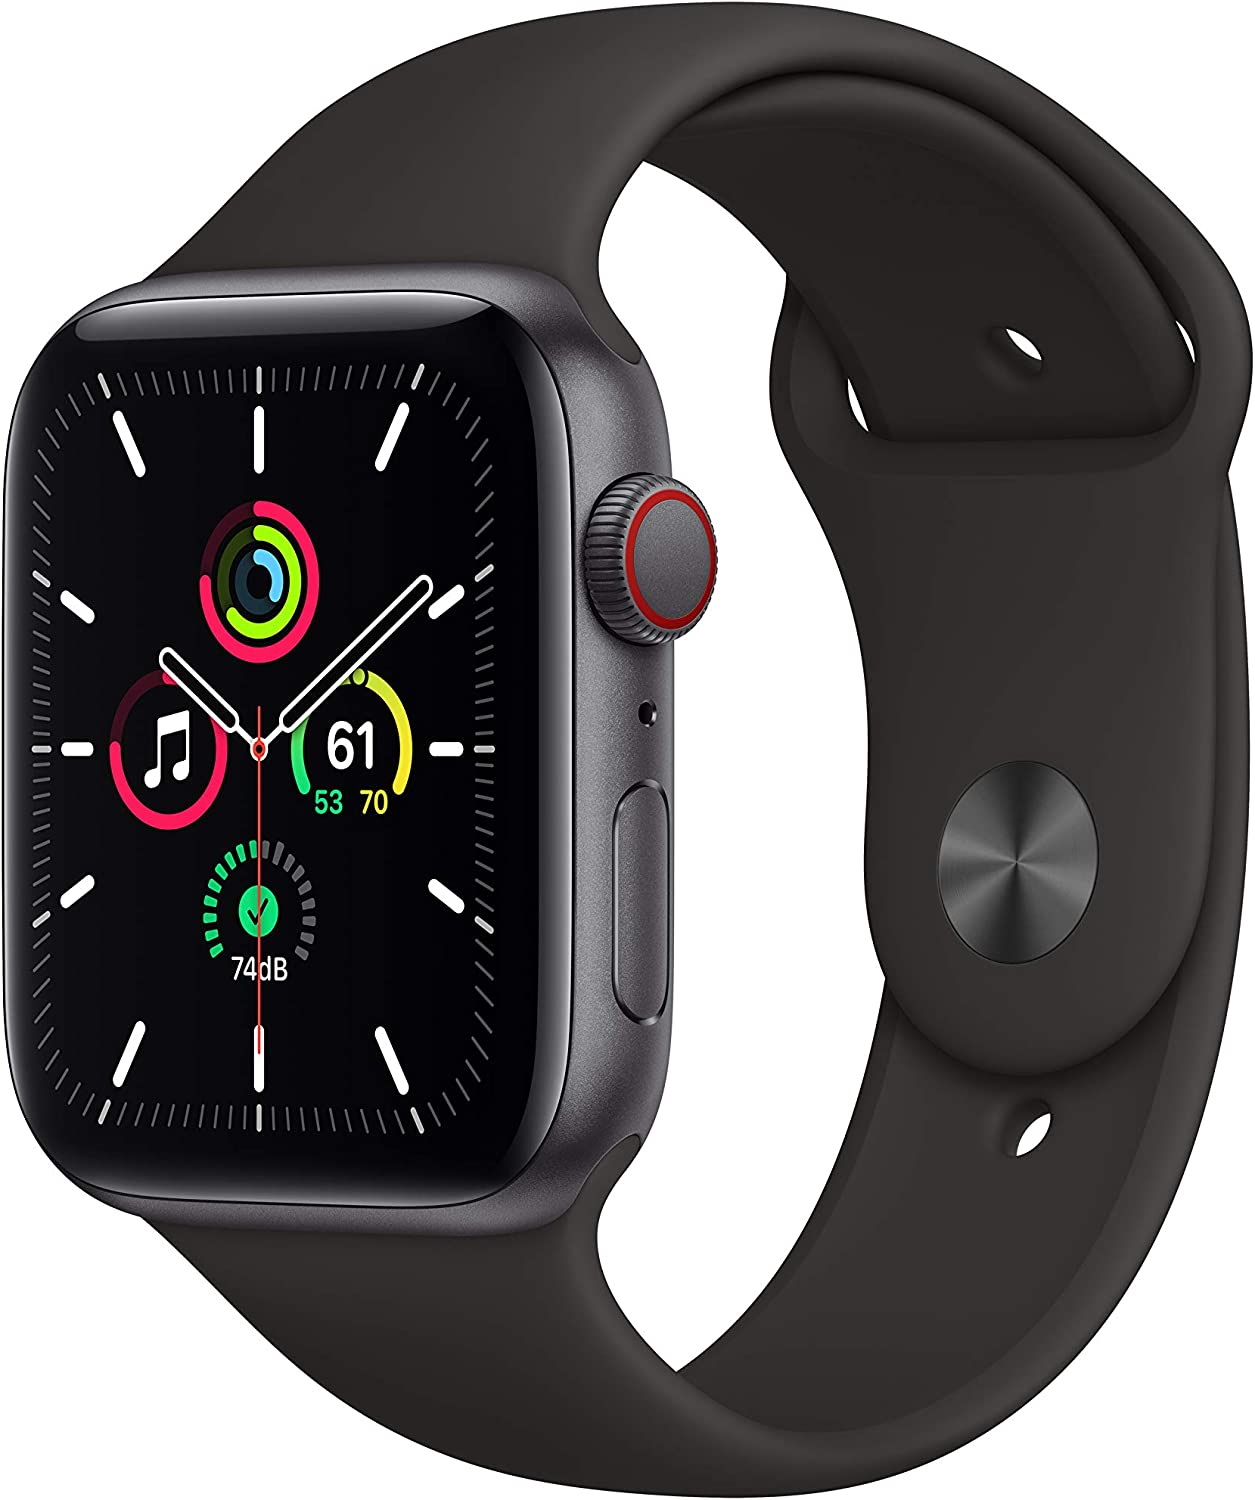 New Apple Watch SE (GPS + Cellular, 44mm) - Space Gray Aluminum Case with Black Sport Band